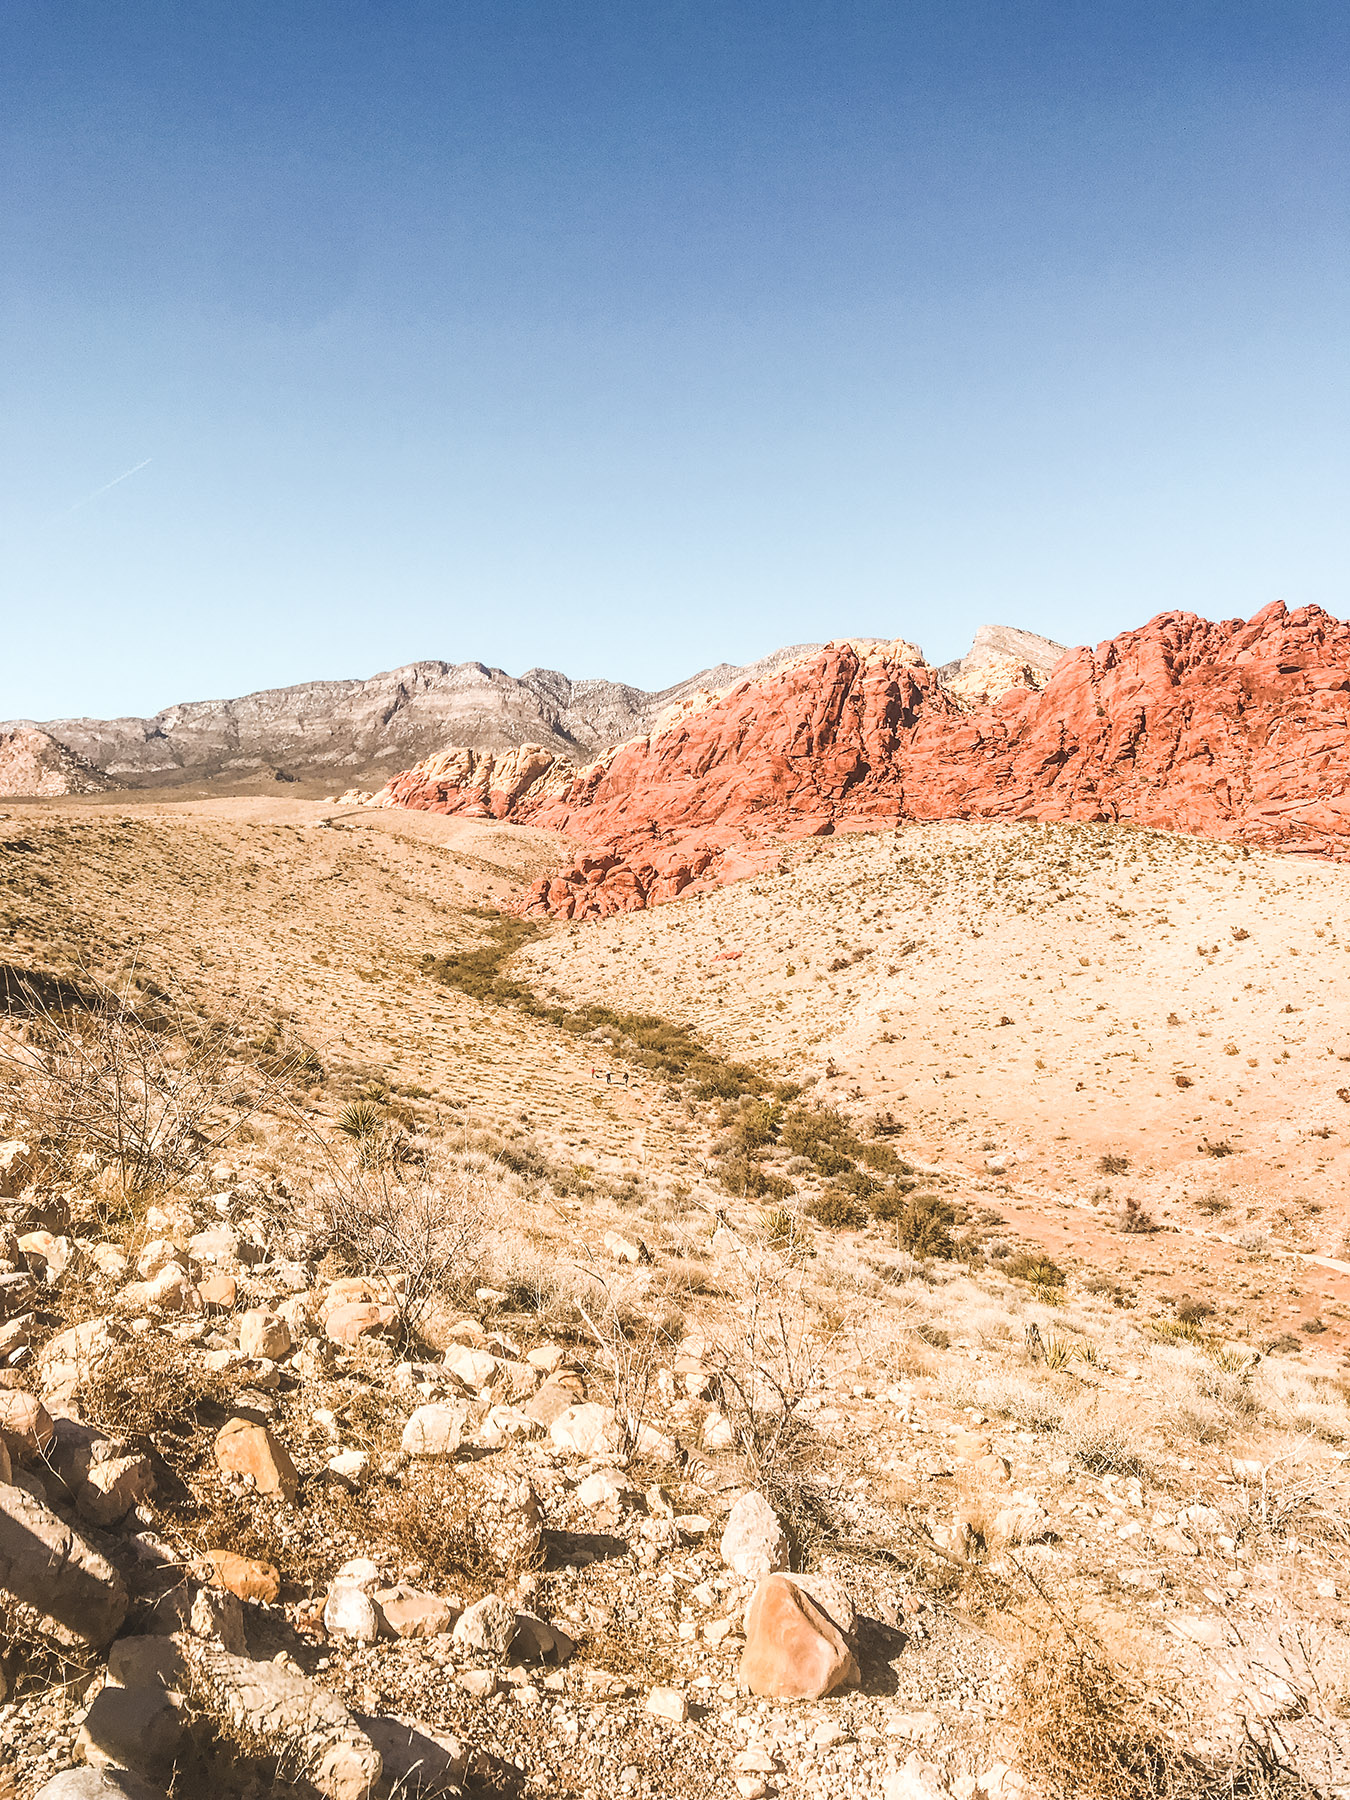 Canyon at Red Rocks in Nevada